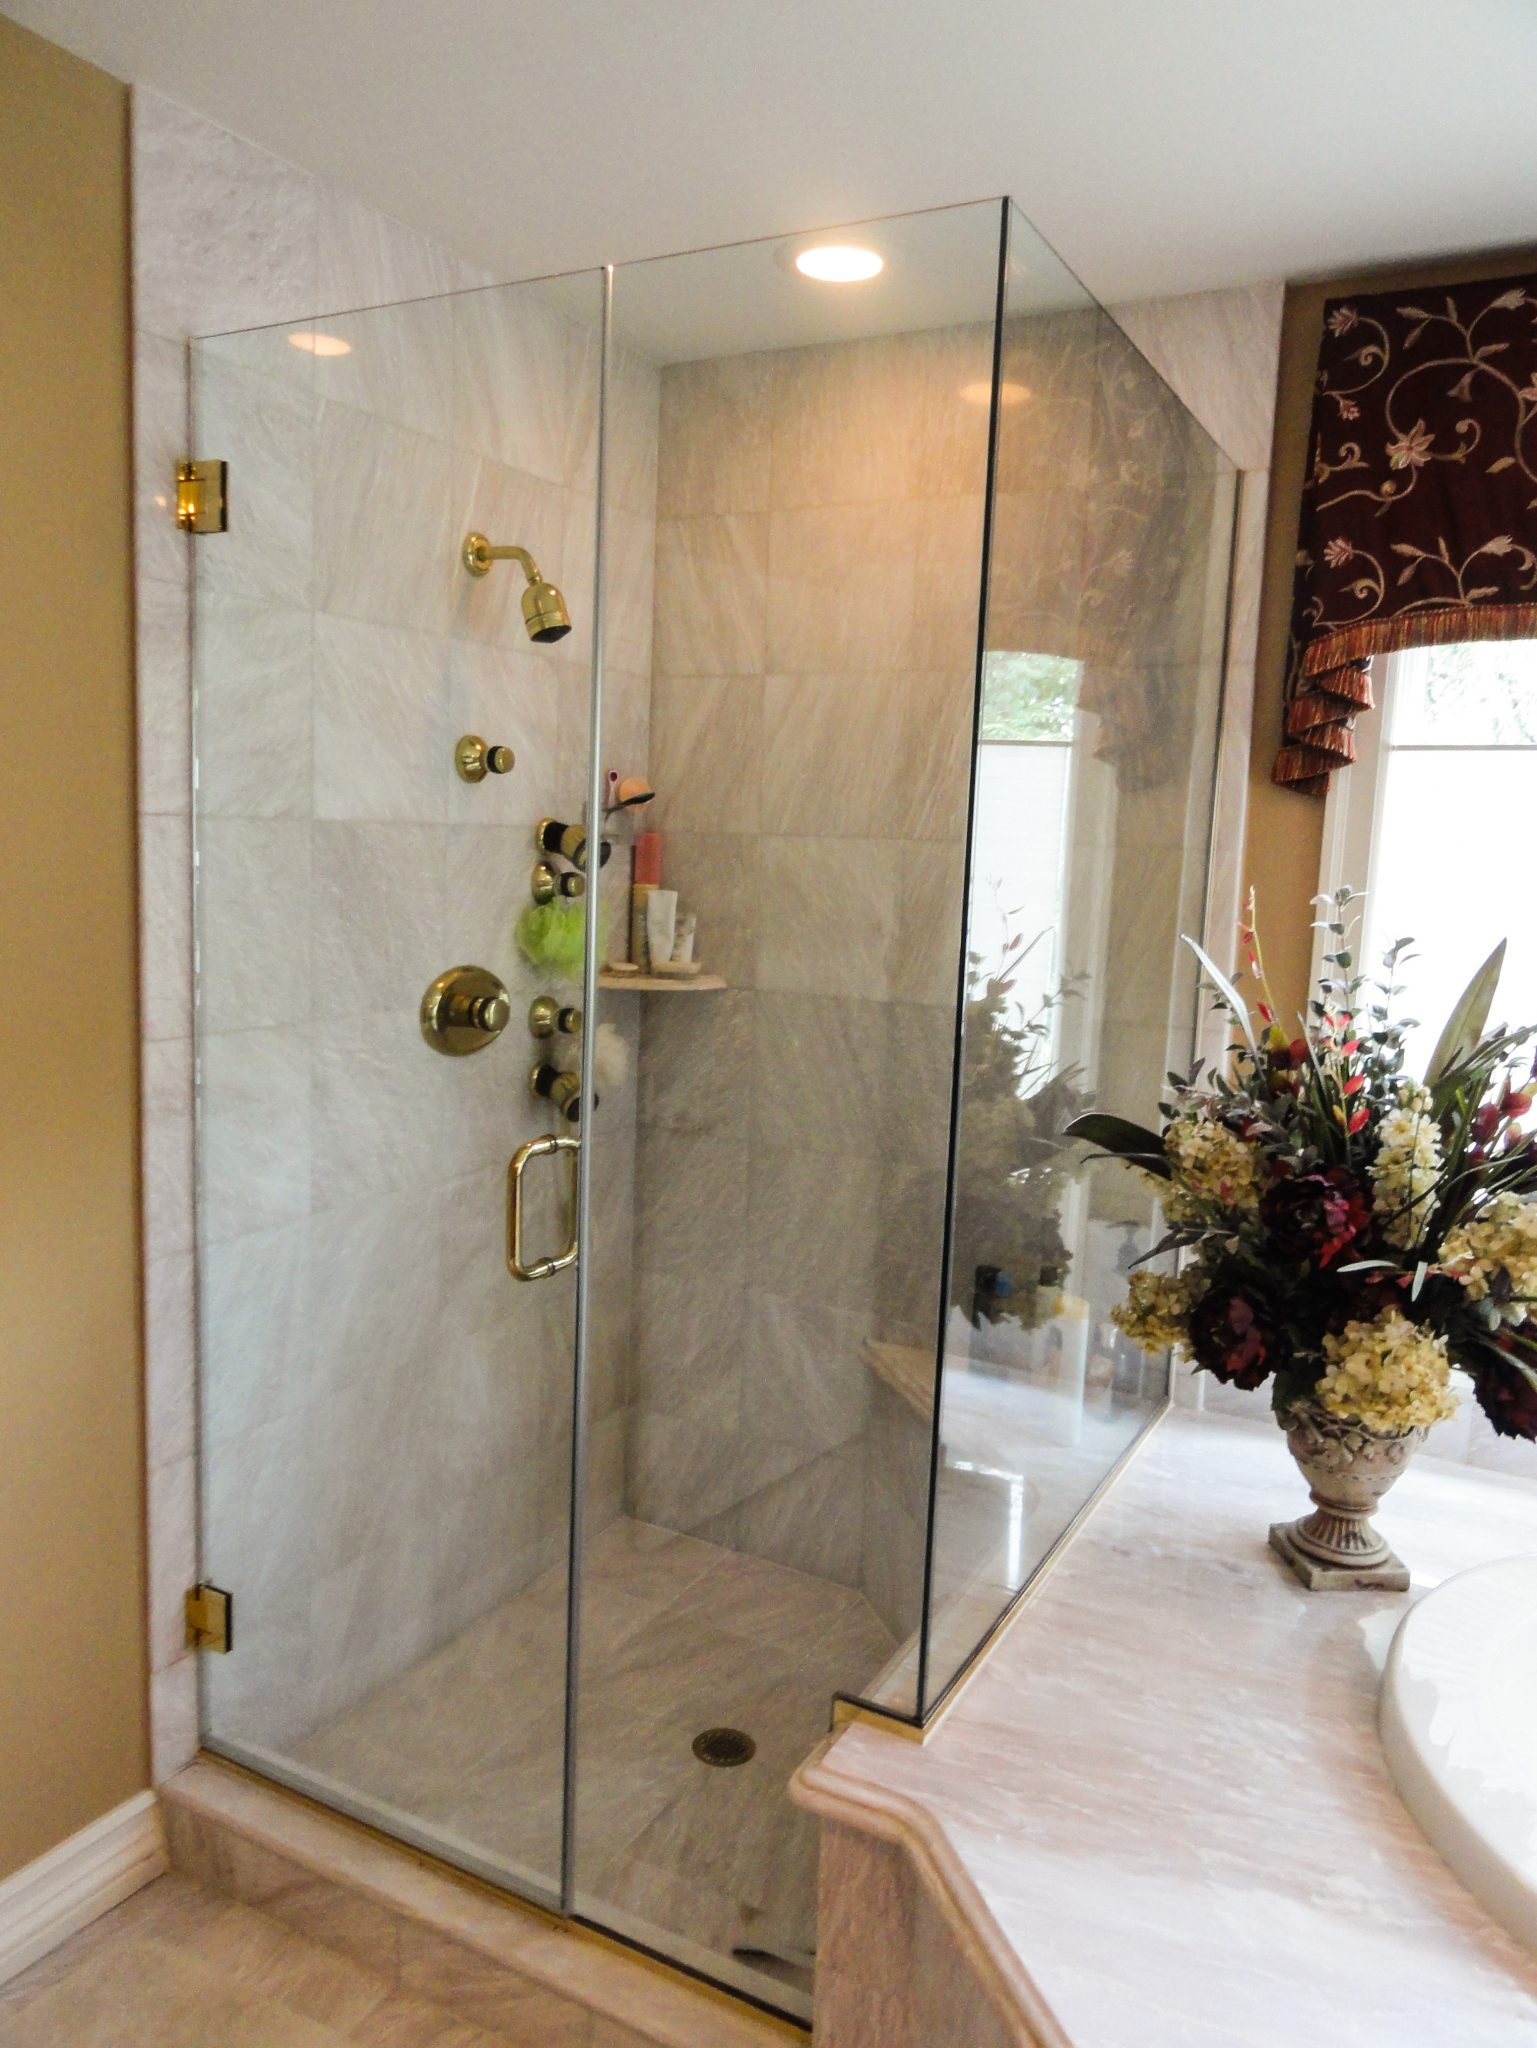 Frameless Shower Doors In New Jersey Allied Glass Mirror - Bathroom fixtures nj